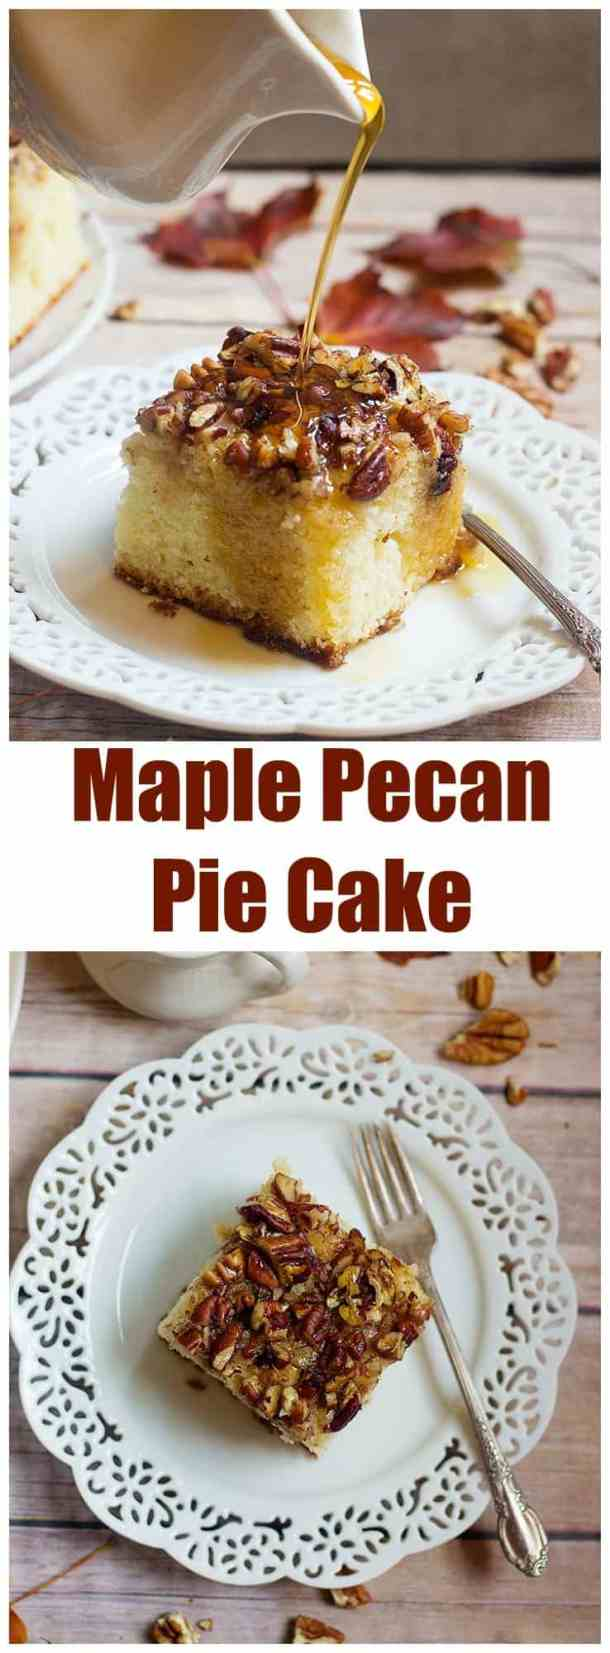 This Pecan Pie Cake Recipe is one you will want to print and save. This delicious cake is topped with chopped pecans and drizzled with pure maple syrup.